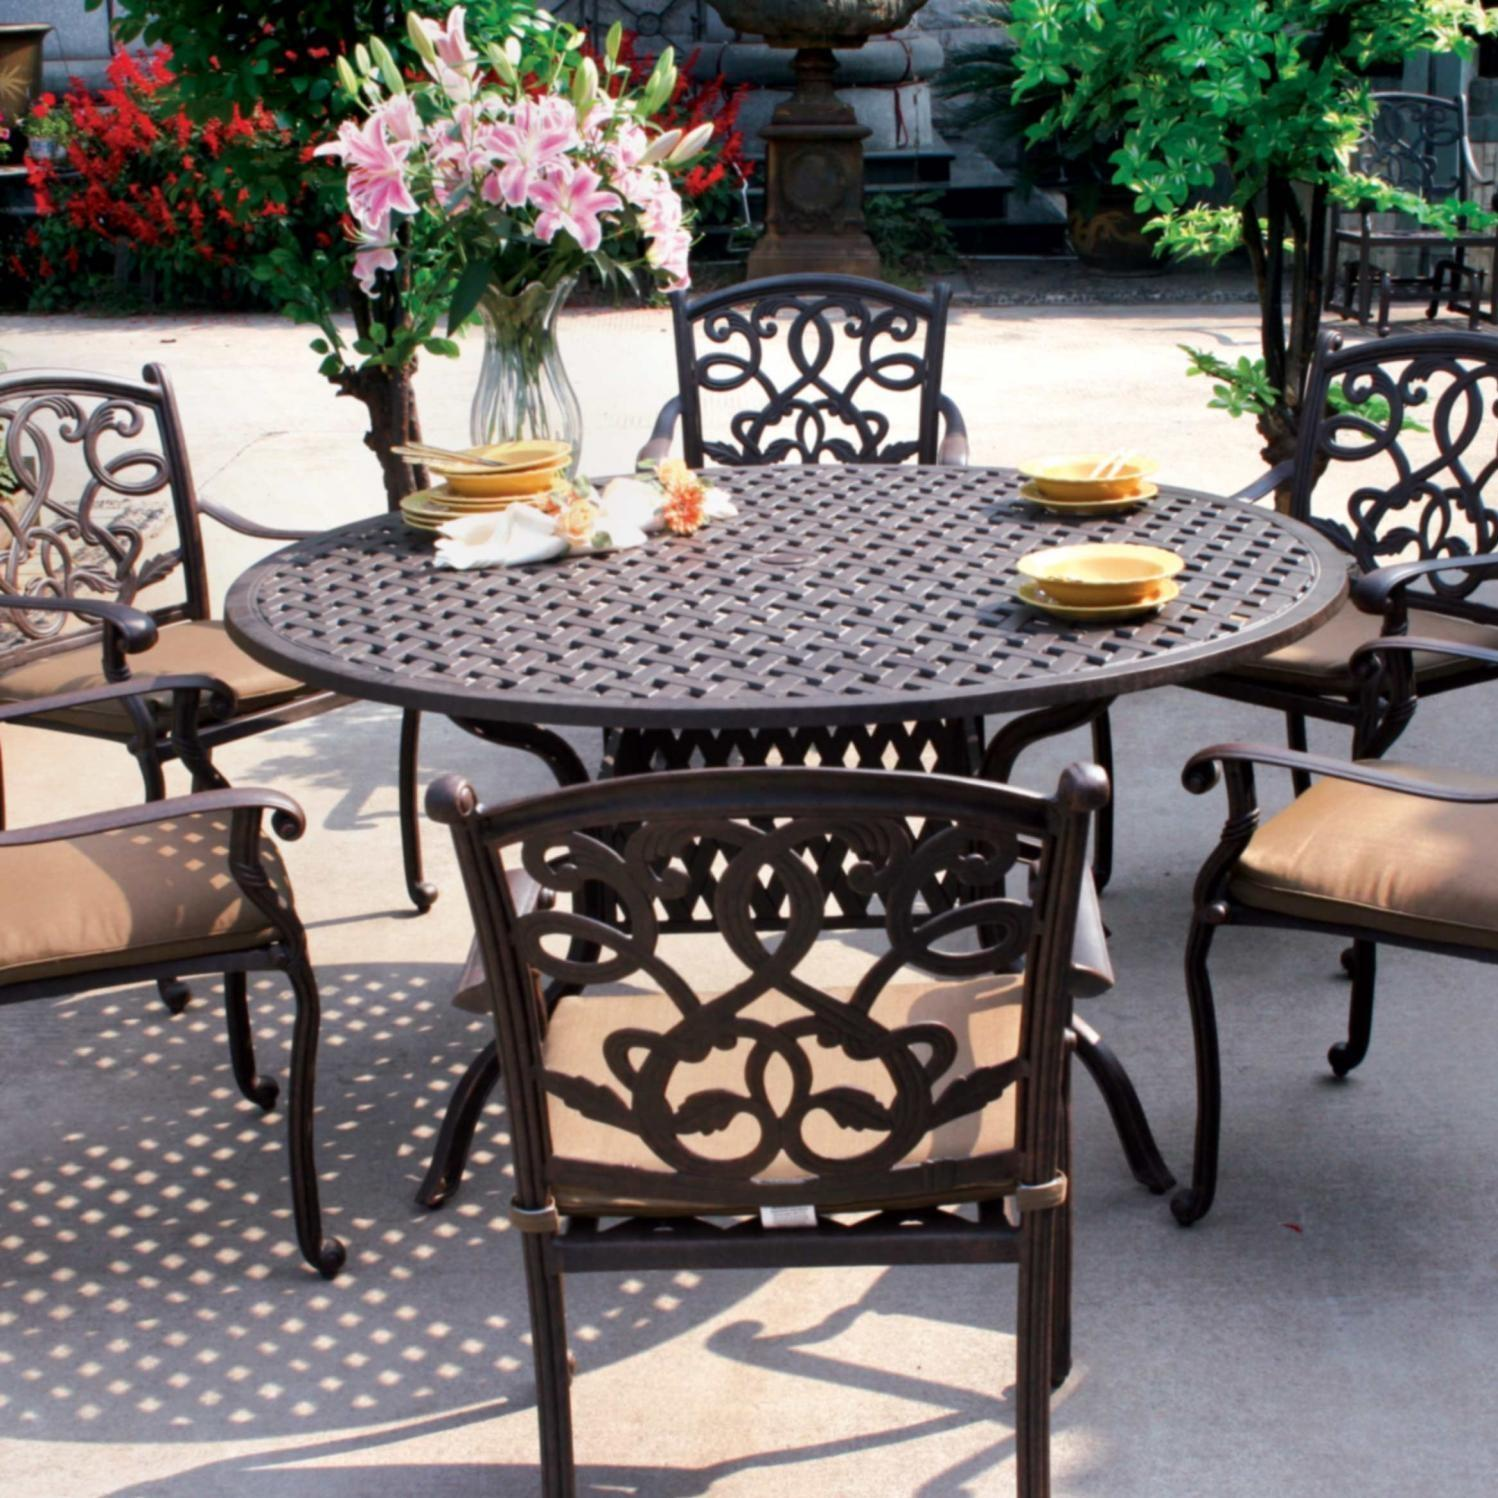 7 Piece Round Patio Dining Set Darlee Santa Monica 7 Piece Cast Aluminum Patio Dining Set